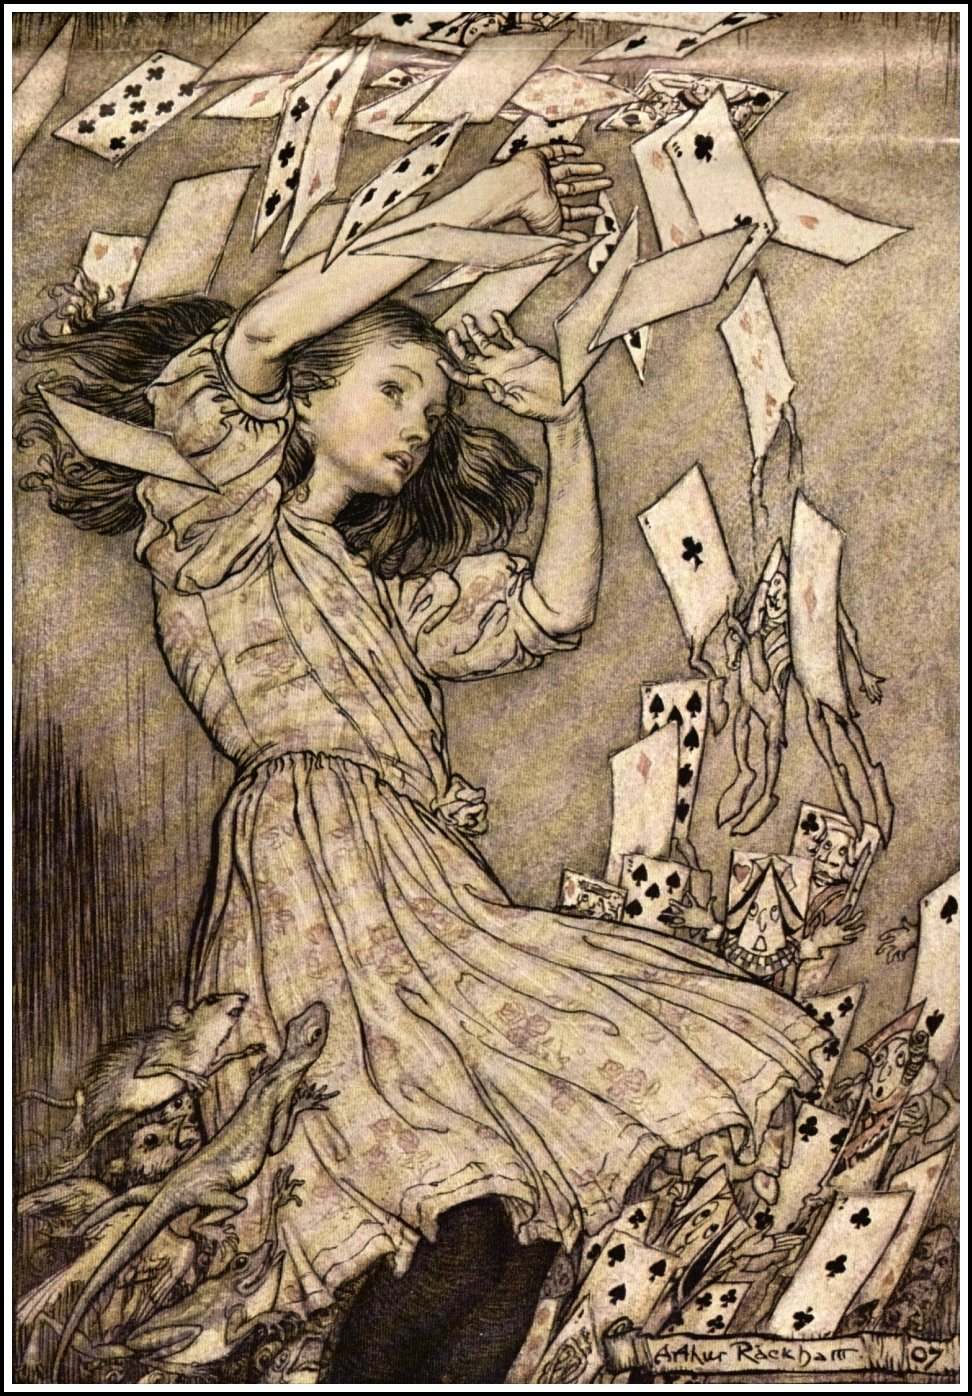 Alice_in_Wonderland_by_Arthur_Rackham_-_15_-_At_this_the_whole_pack_rose_up_into_the_air_and_came_flying_down_upon_her.jpg